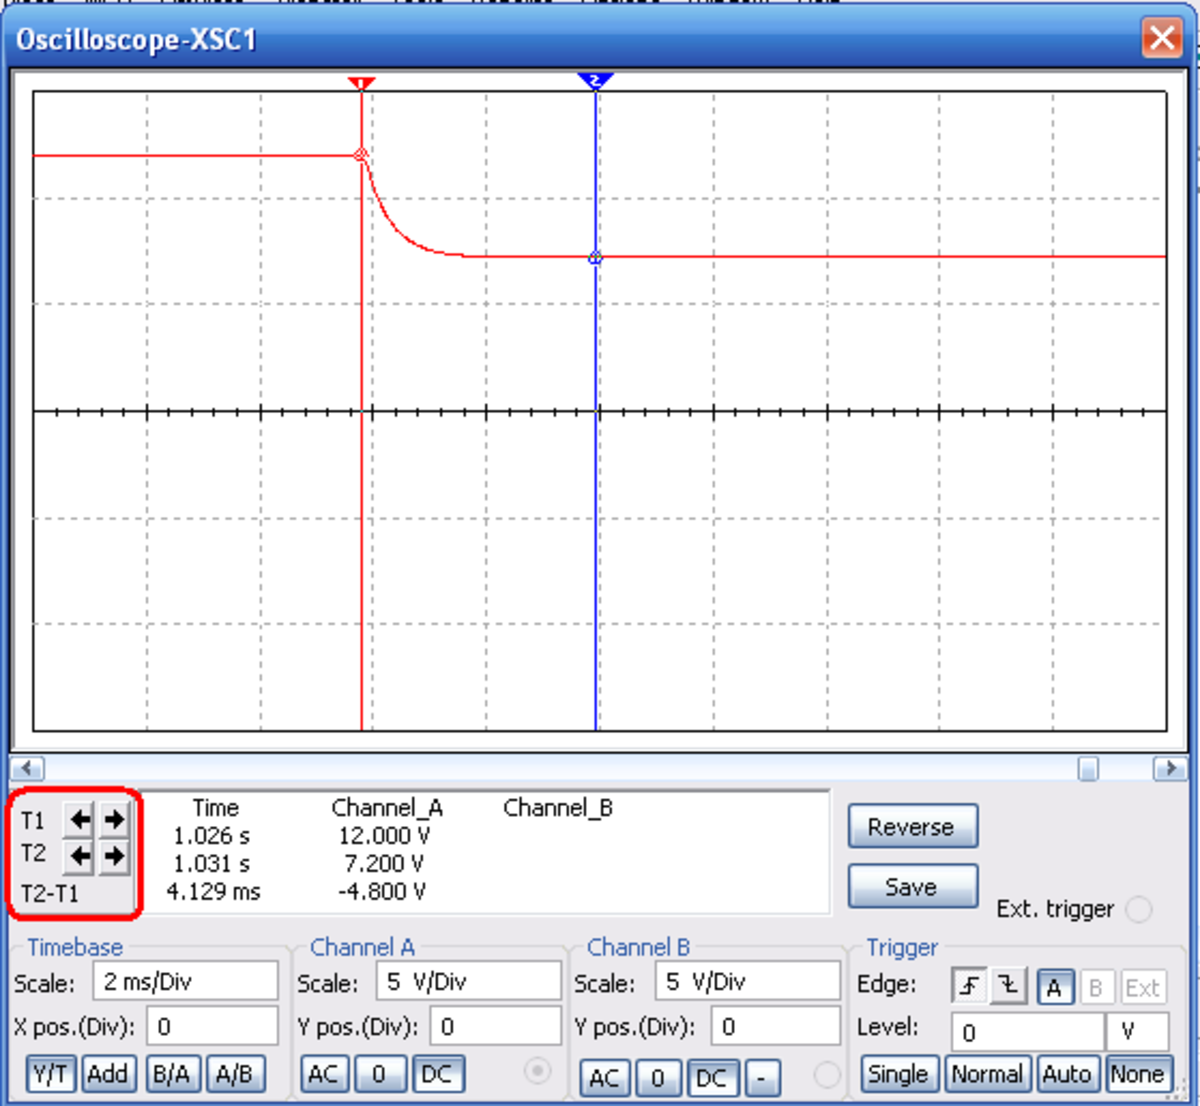 Oscilloscope trace for 'Open switch Closing'.